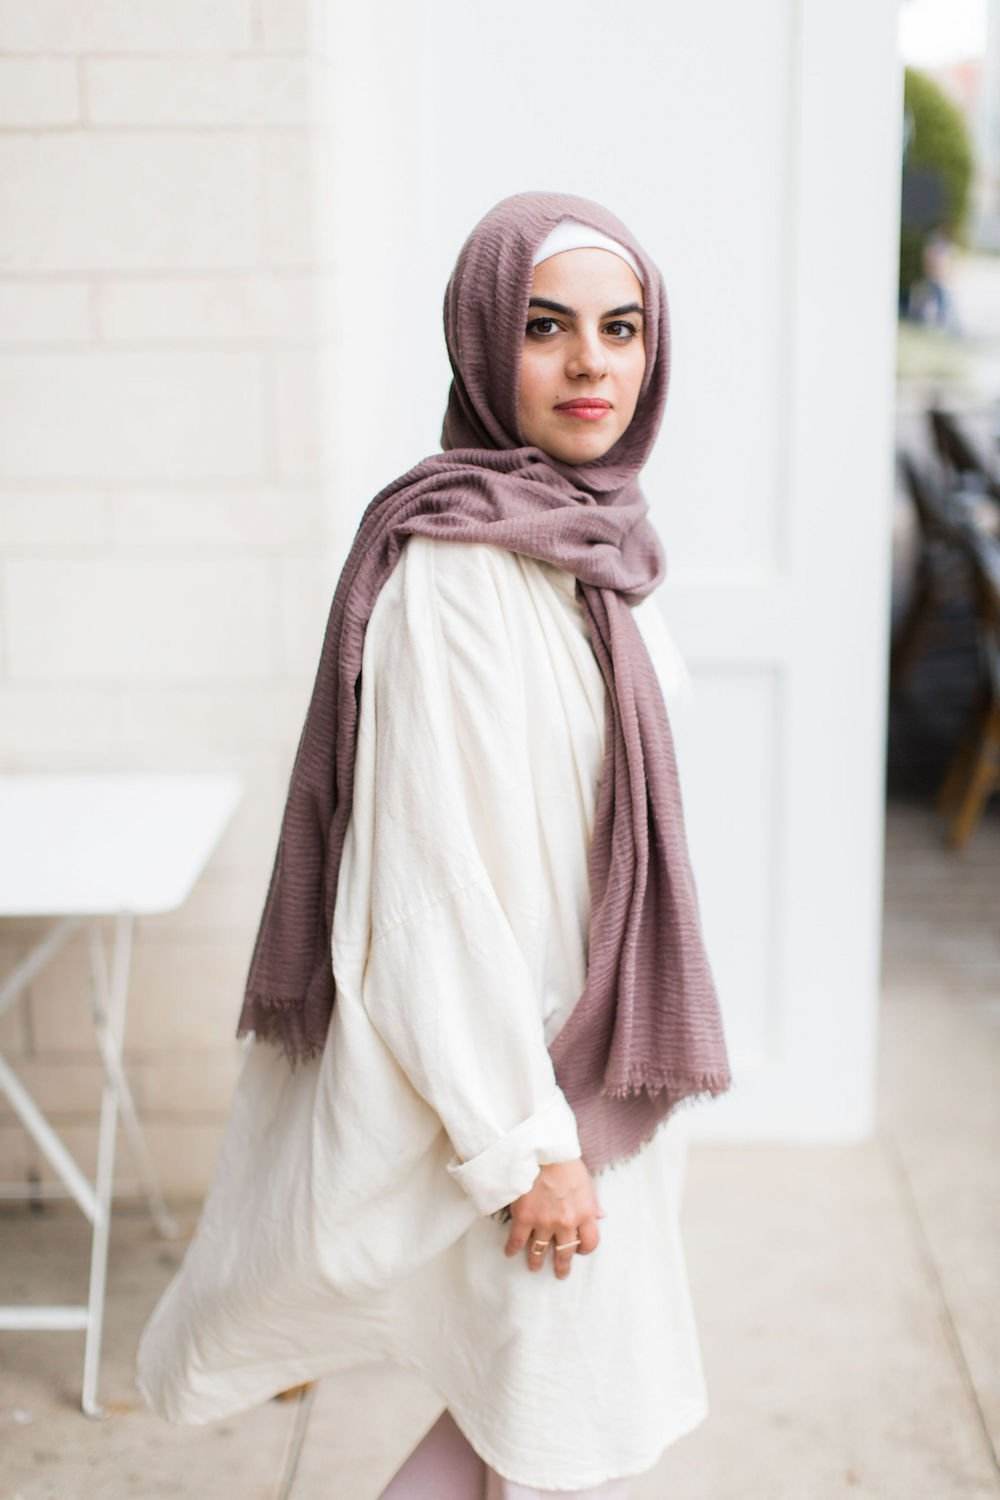 e08ac9323f A Week of Outfits: Dana Chehab | A Cup of Jo